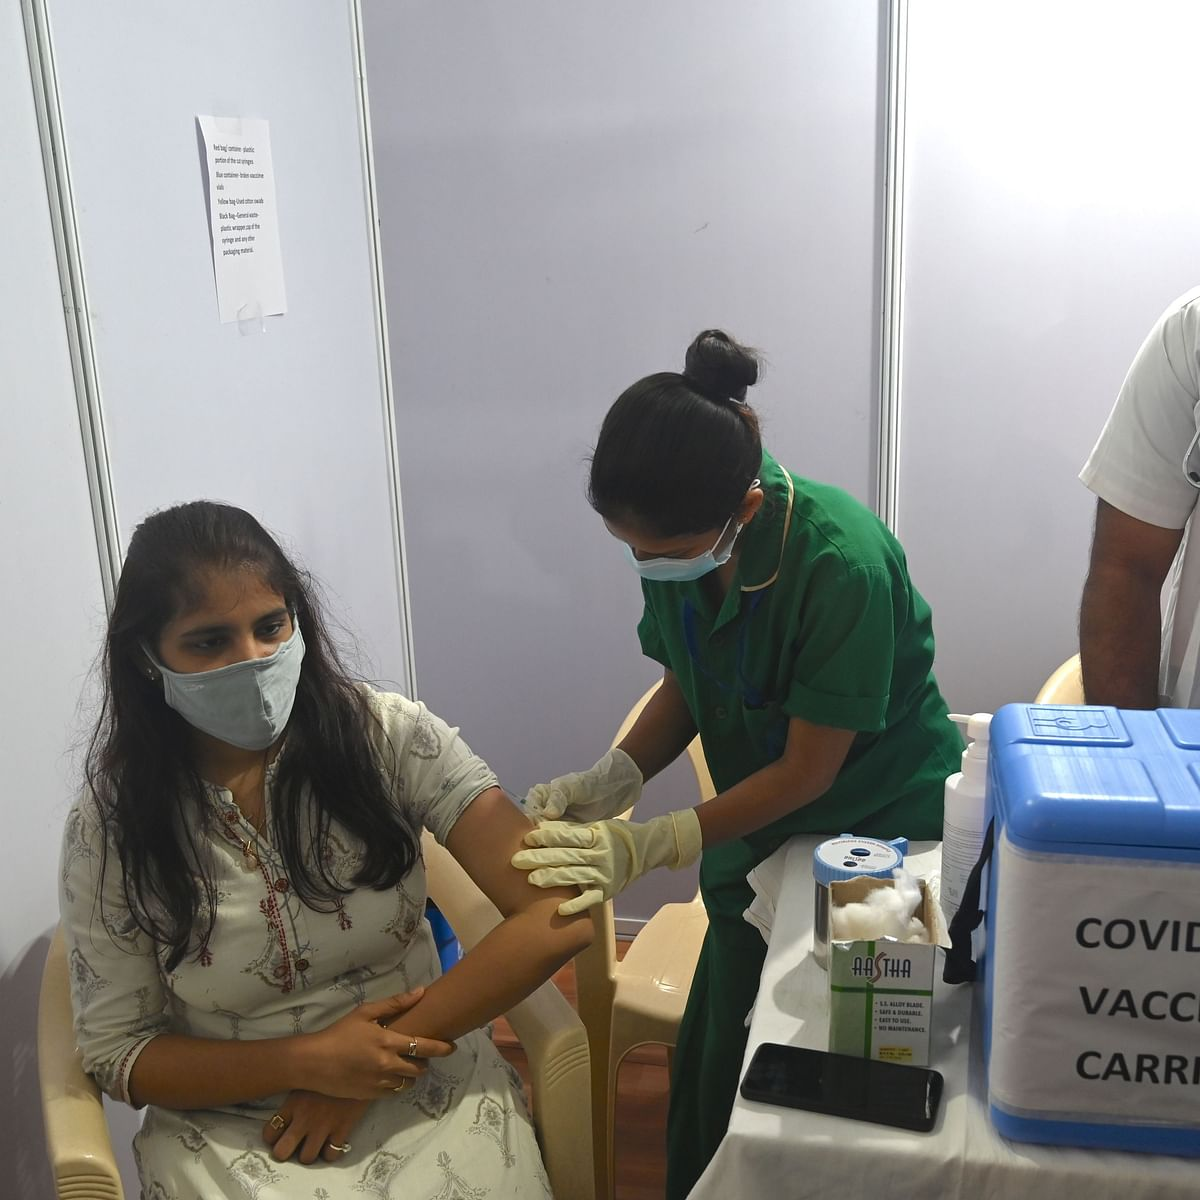 COVID-19 vaccination: Registration on Co-WIN app for third phase beneficiaries to begin from March 1